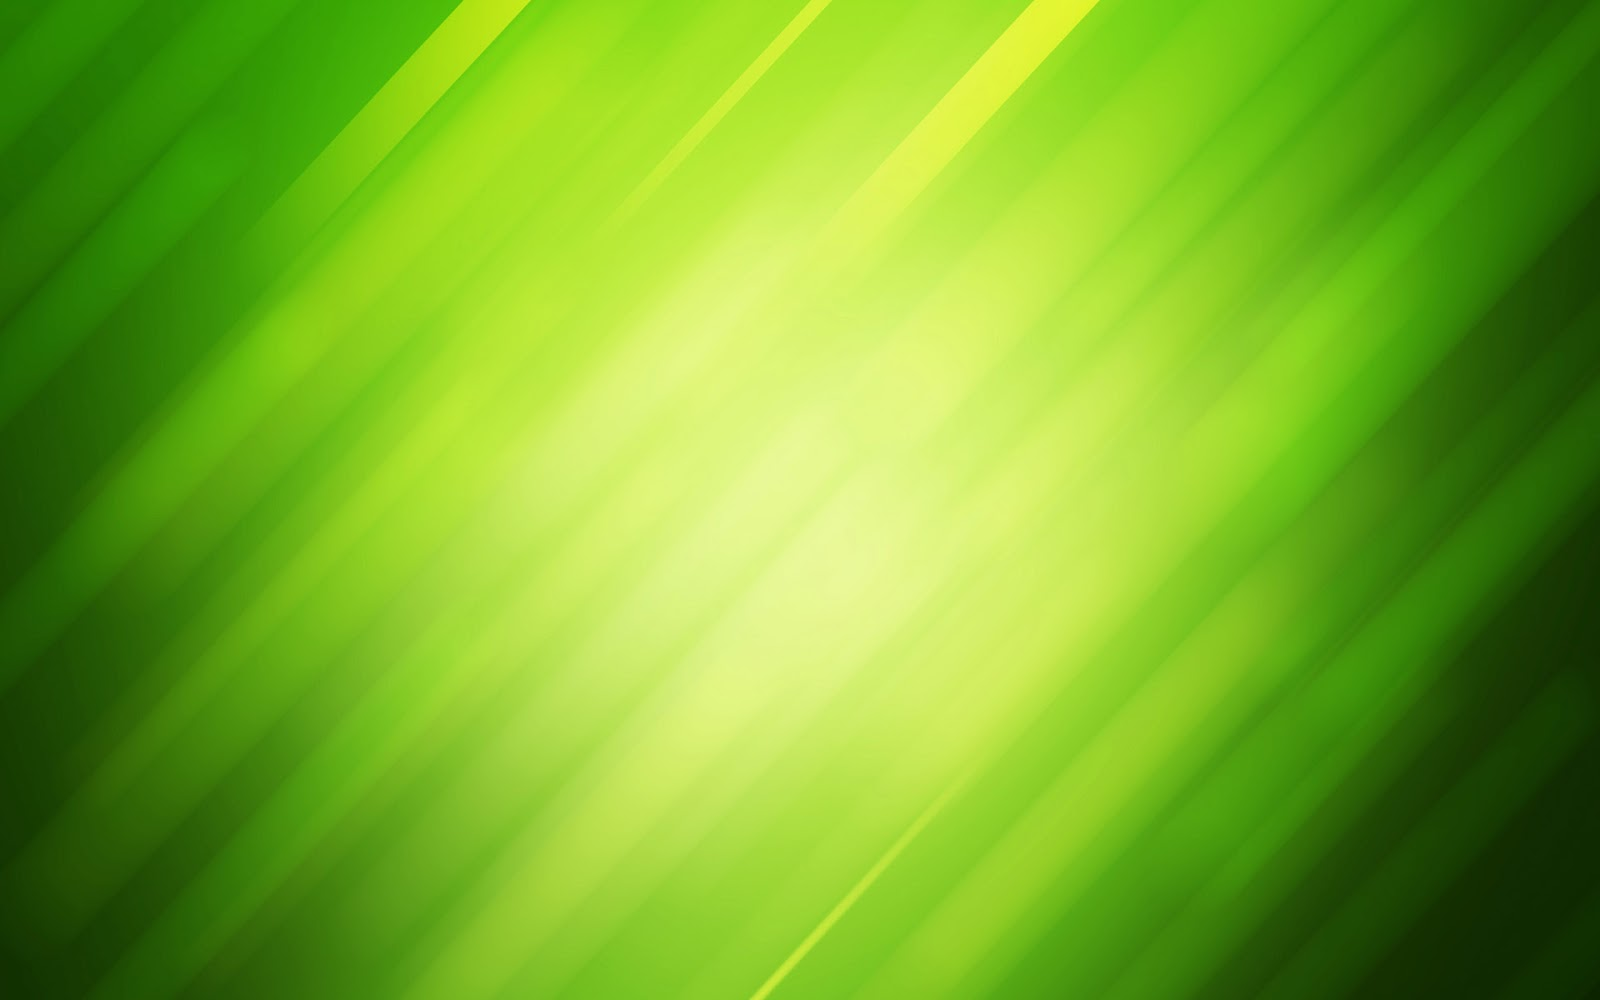 Colorful Wallpaper Green Background